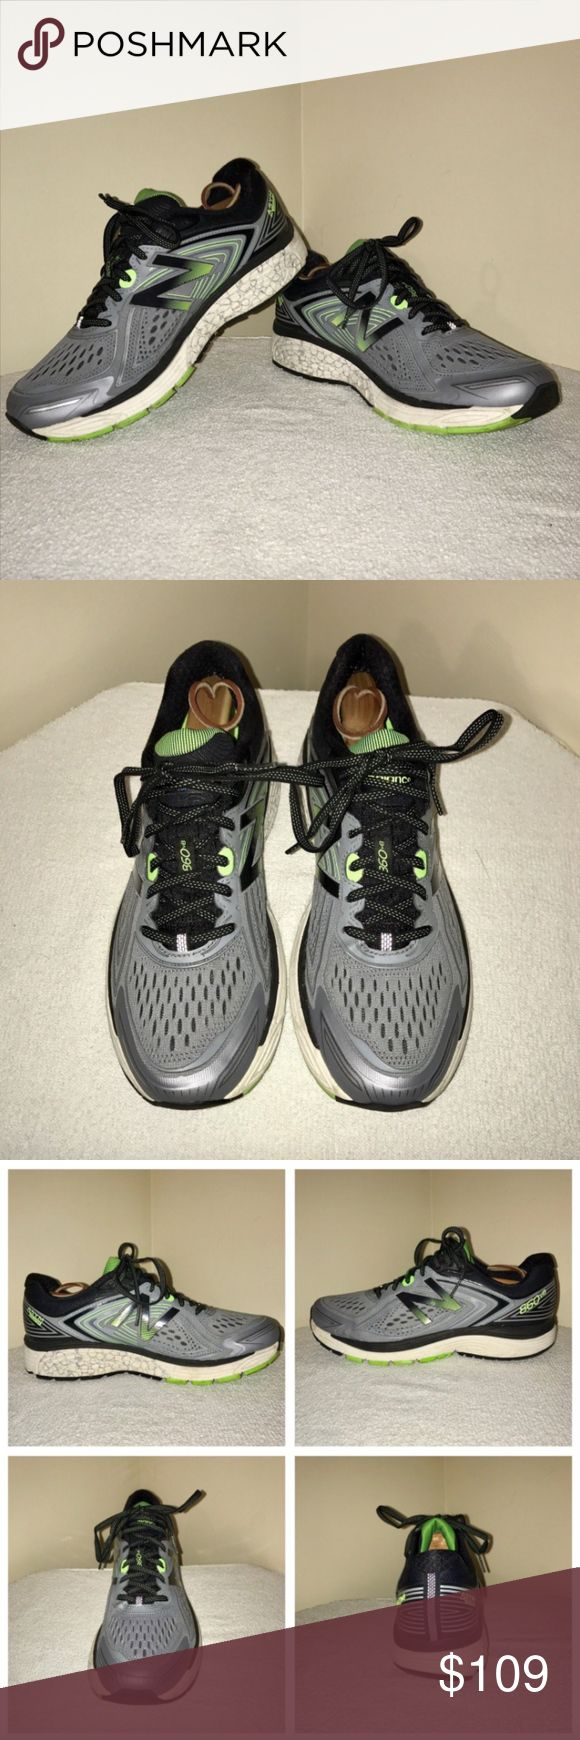 Men'S New Balance 860 V8 Running Sneakers 8.5 M MANUFACTER DATE 07/2017  For sale is a pair of New Balance 860 V8 Men's Running Sneakers. The sneakers were only used one time and are practically brand new. Comes from a smoke free environment. These were purchased at the MSRP of $139.99. New Balance Shoes Athletic Shoes